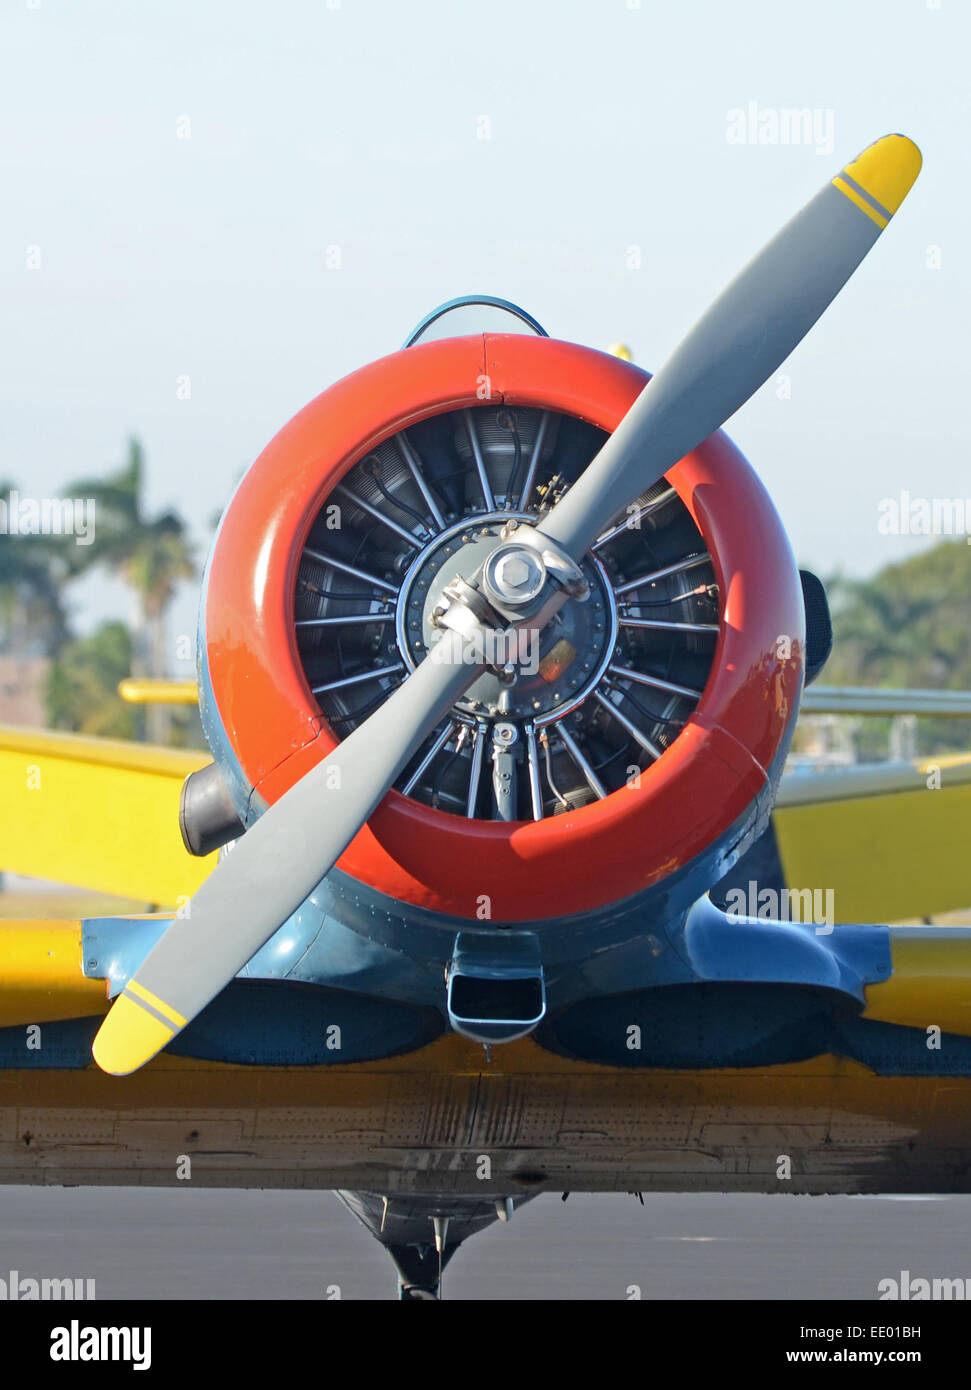 Retro propeller airplane front view - Stock Image